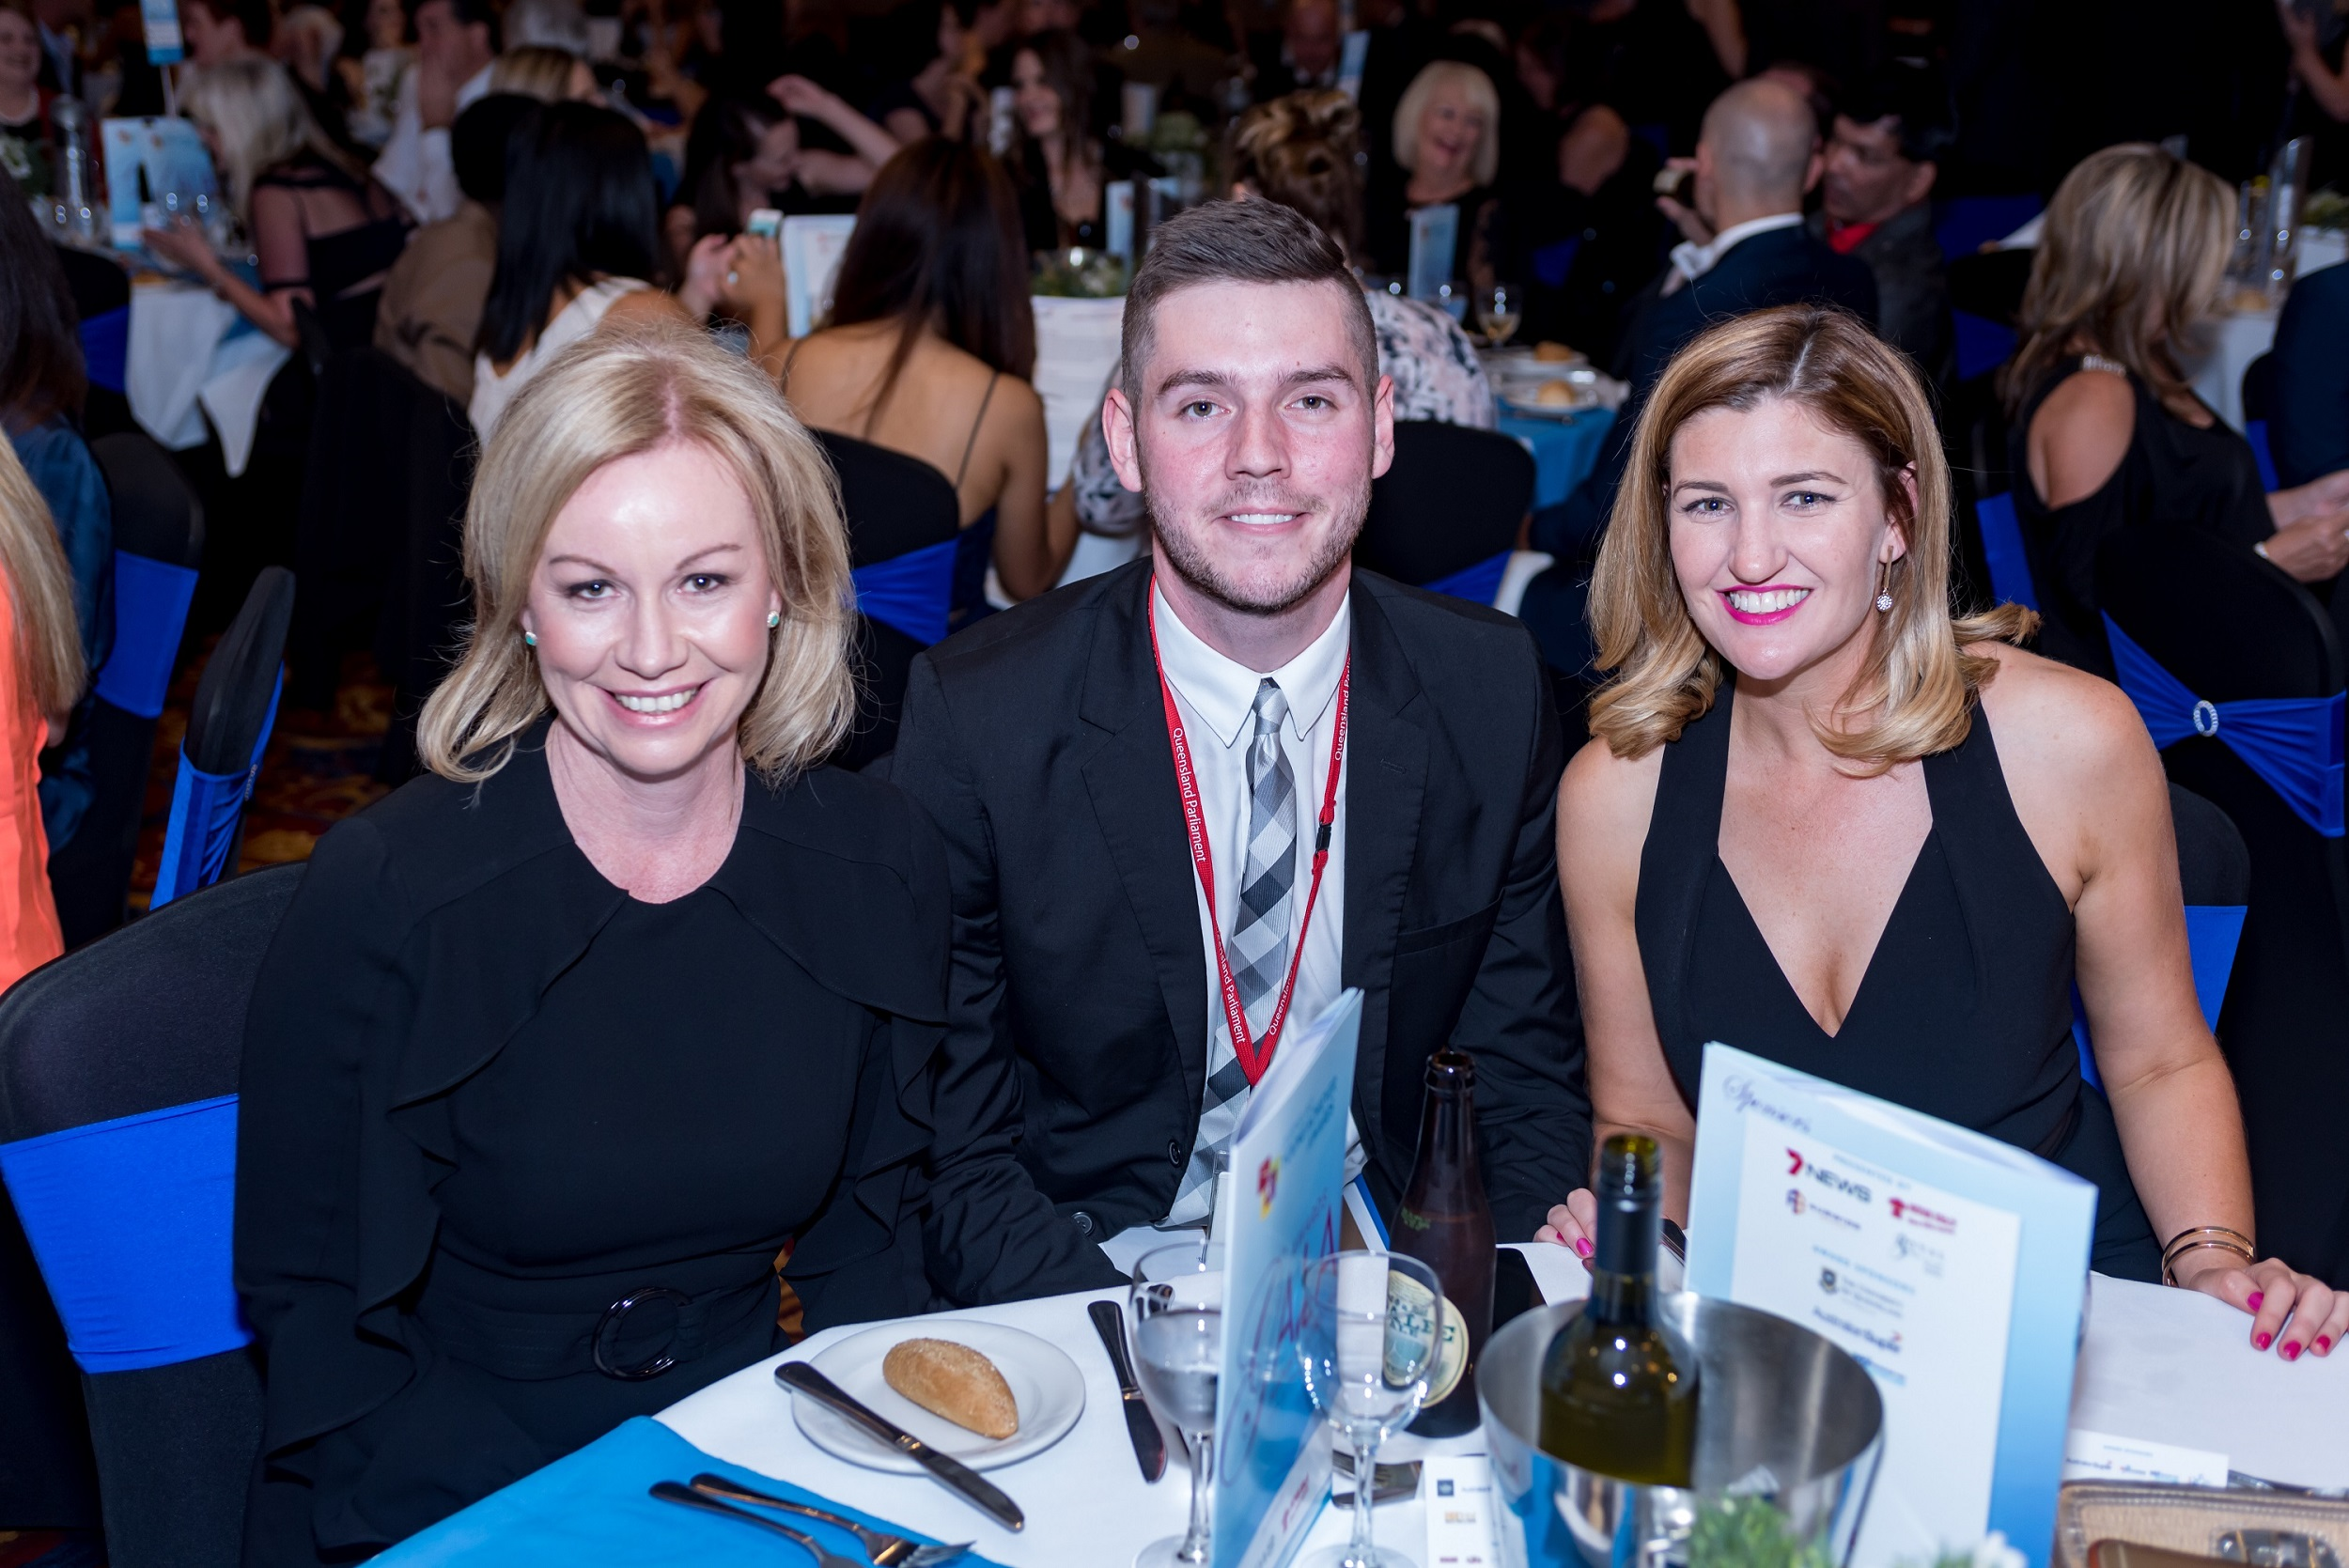 Queensland Young Achiever Awards